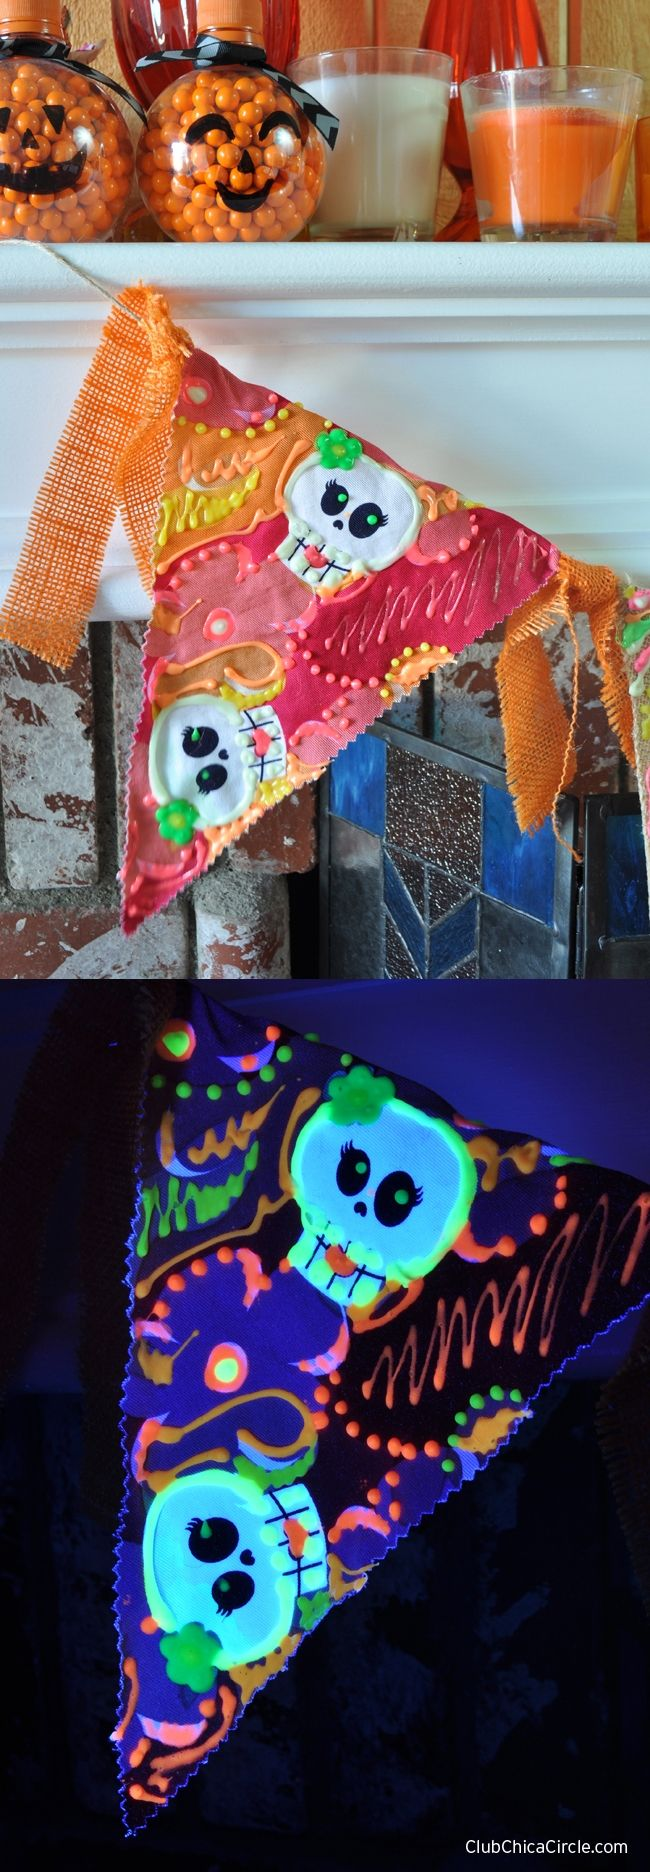 The Ultimate Glow-in-the-Dark DIY Roundup: 20+ DIY Project Ideas   Halloween crafts, Puffy paint diy